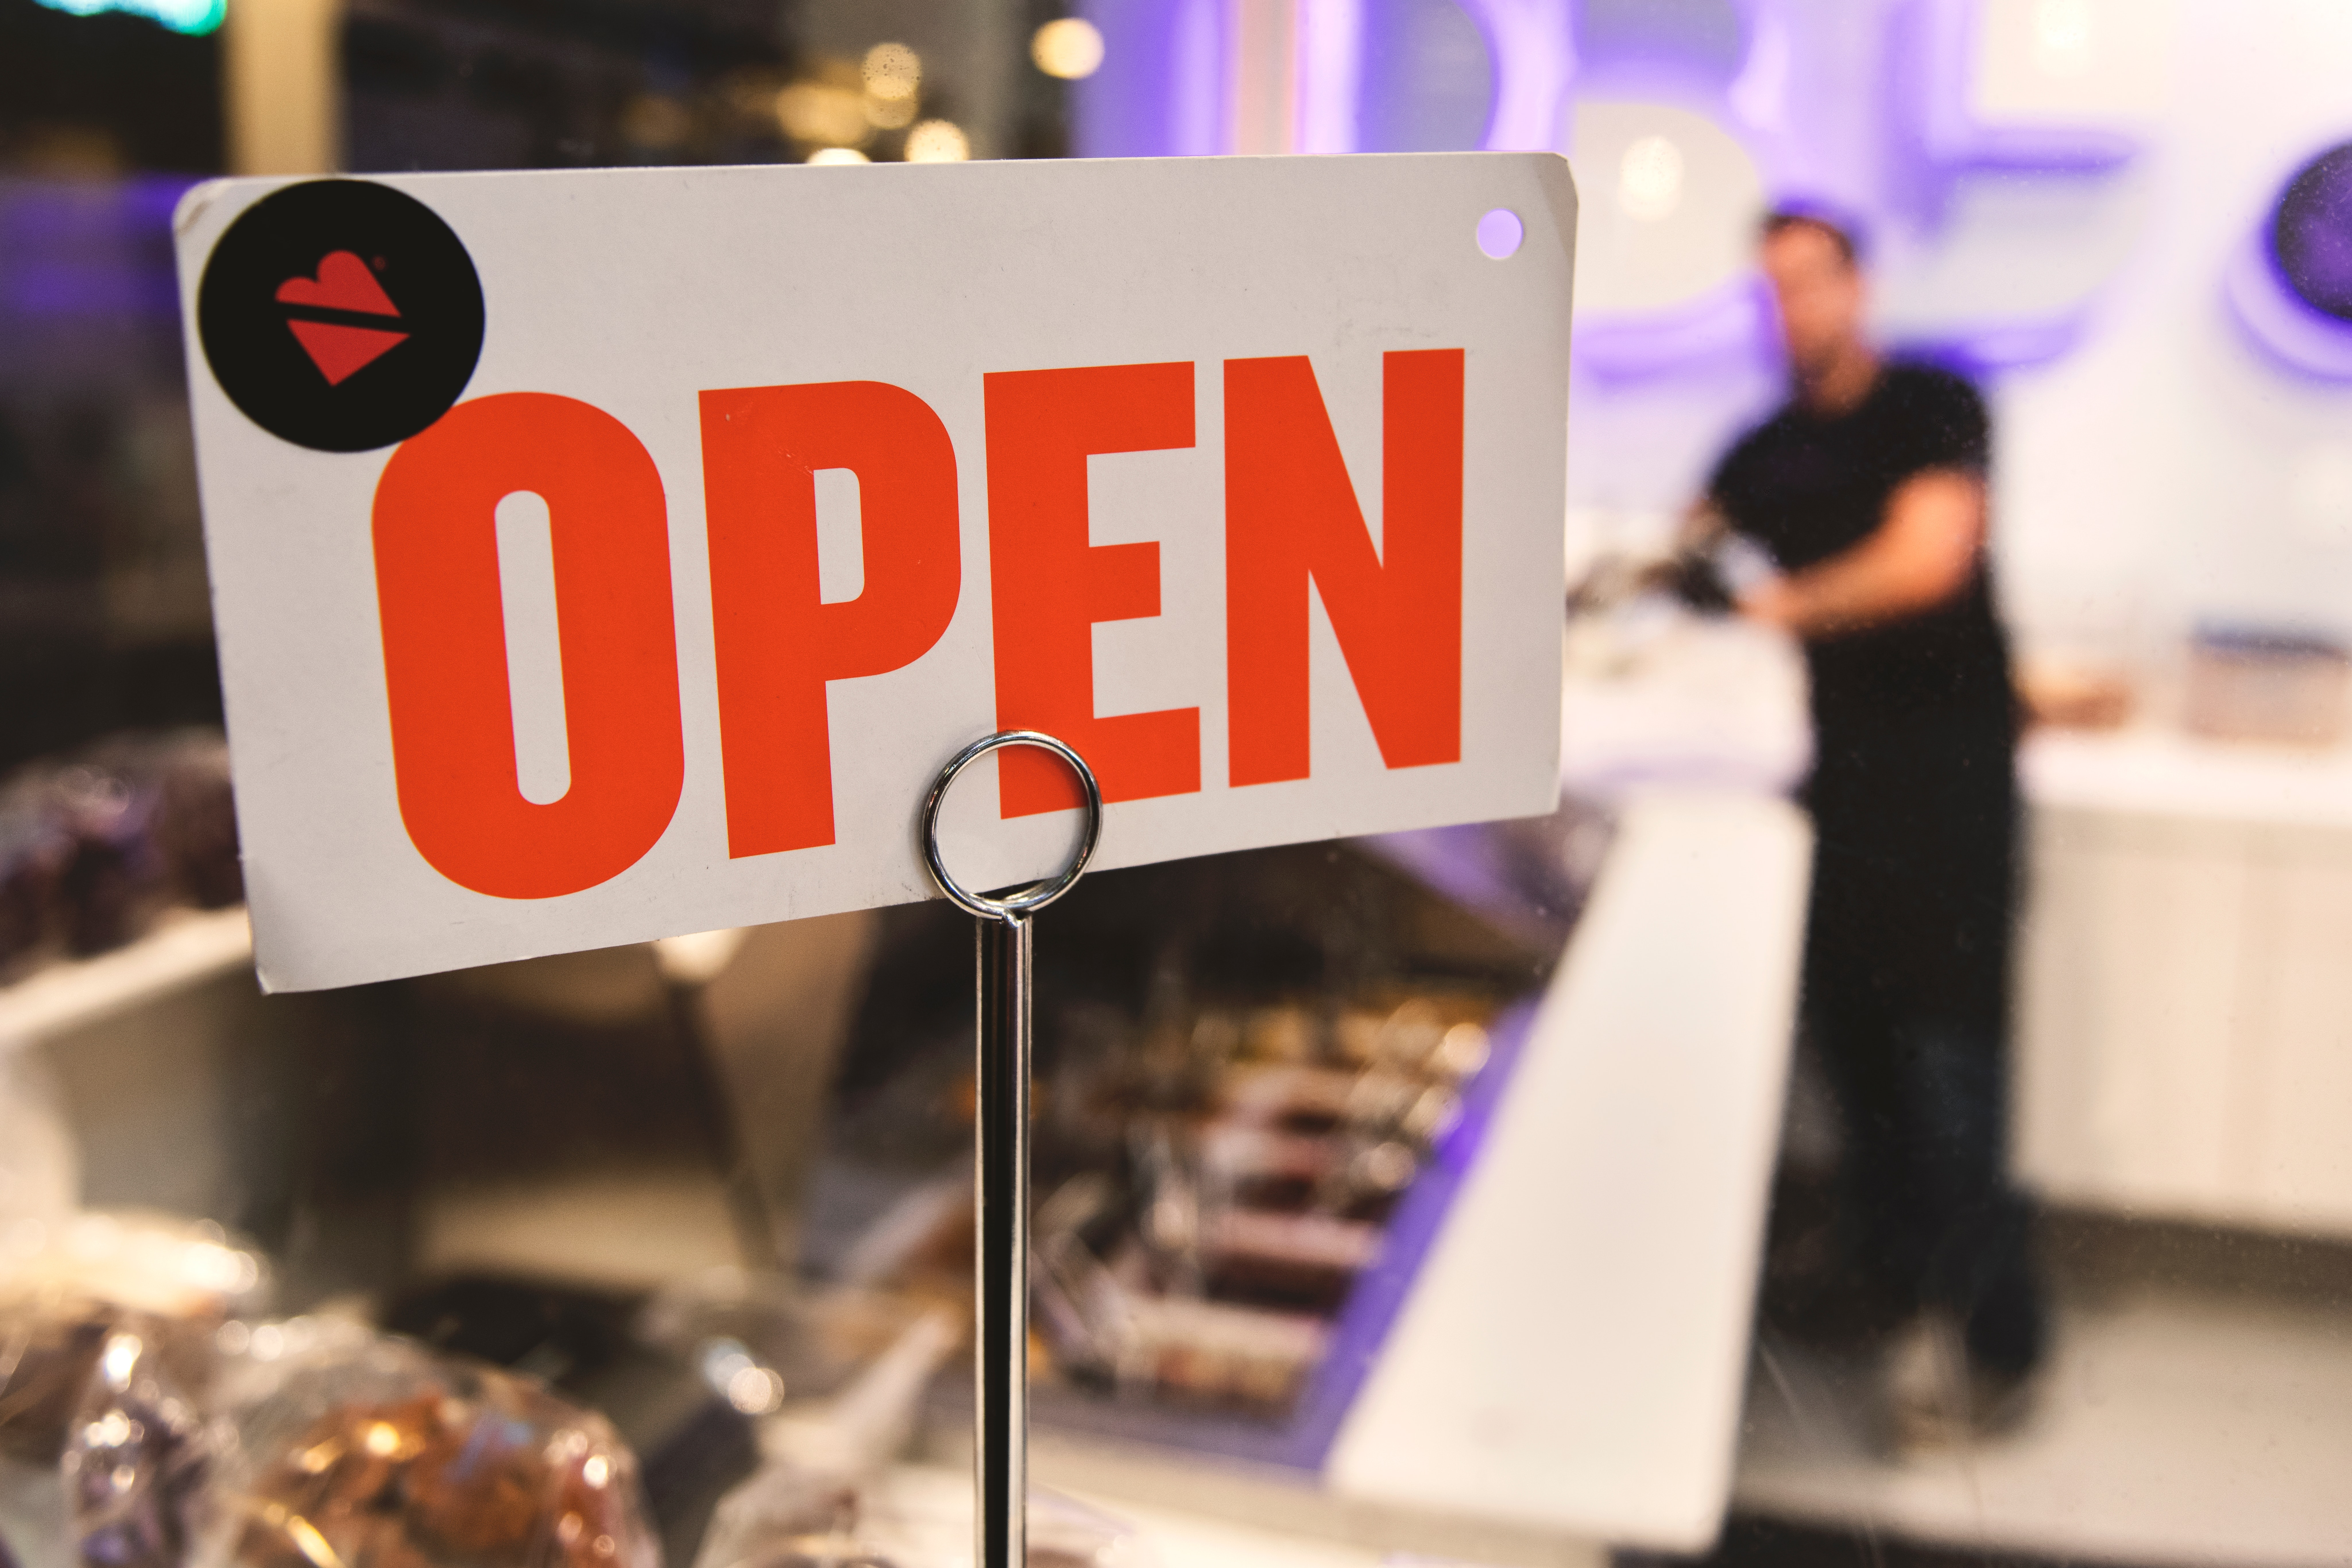 Shallow Focus Photography of Red and White Open Signage Near Man Wearing Black Shirt, Shopping, Shop, Service, Sign, HQ Photo